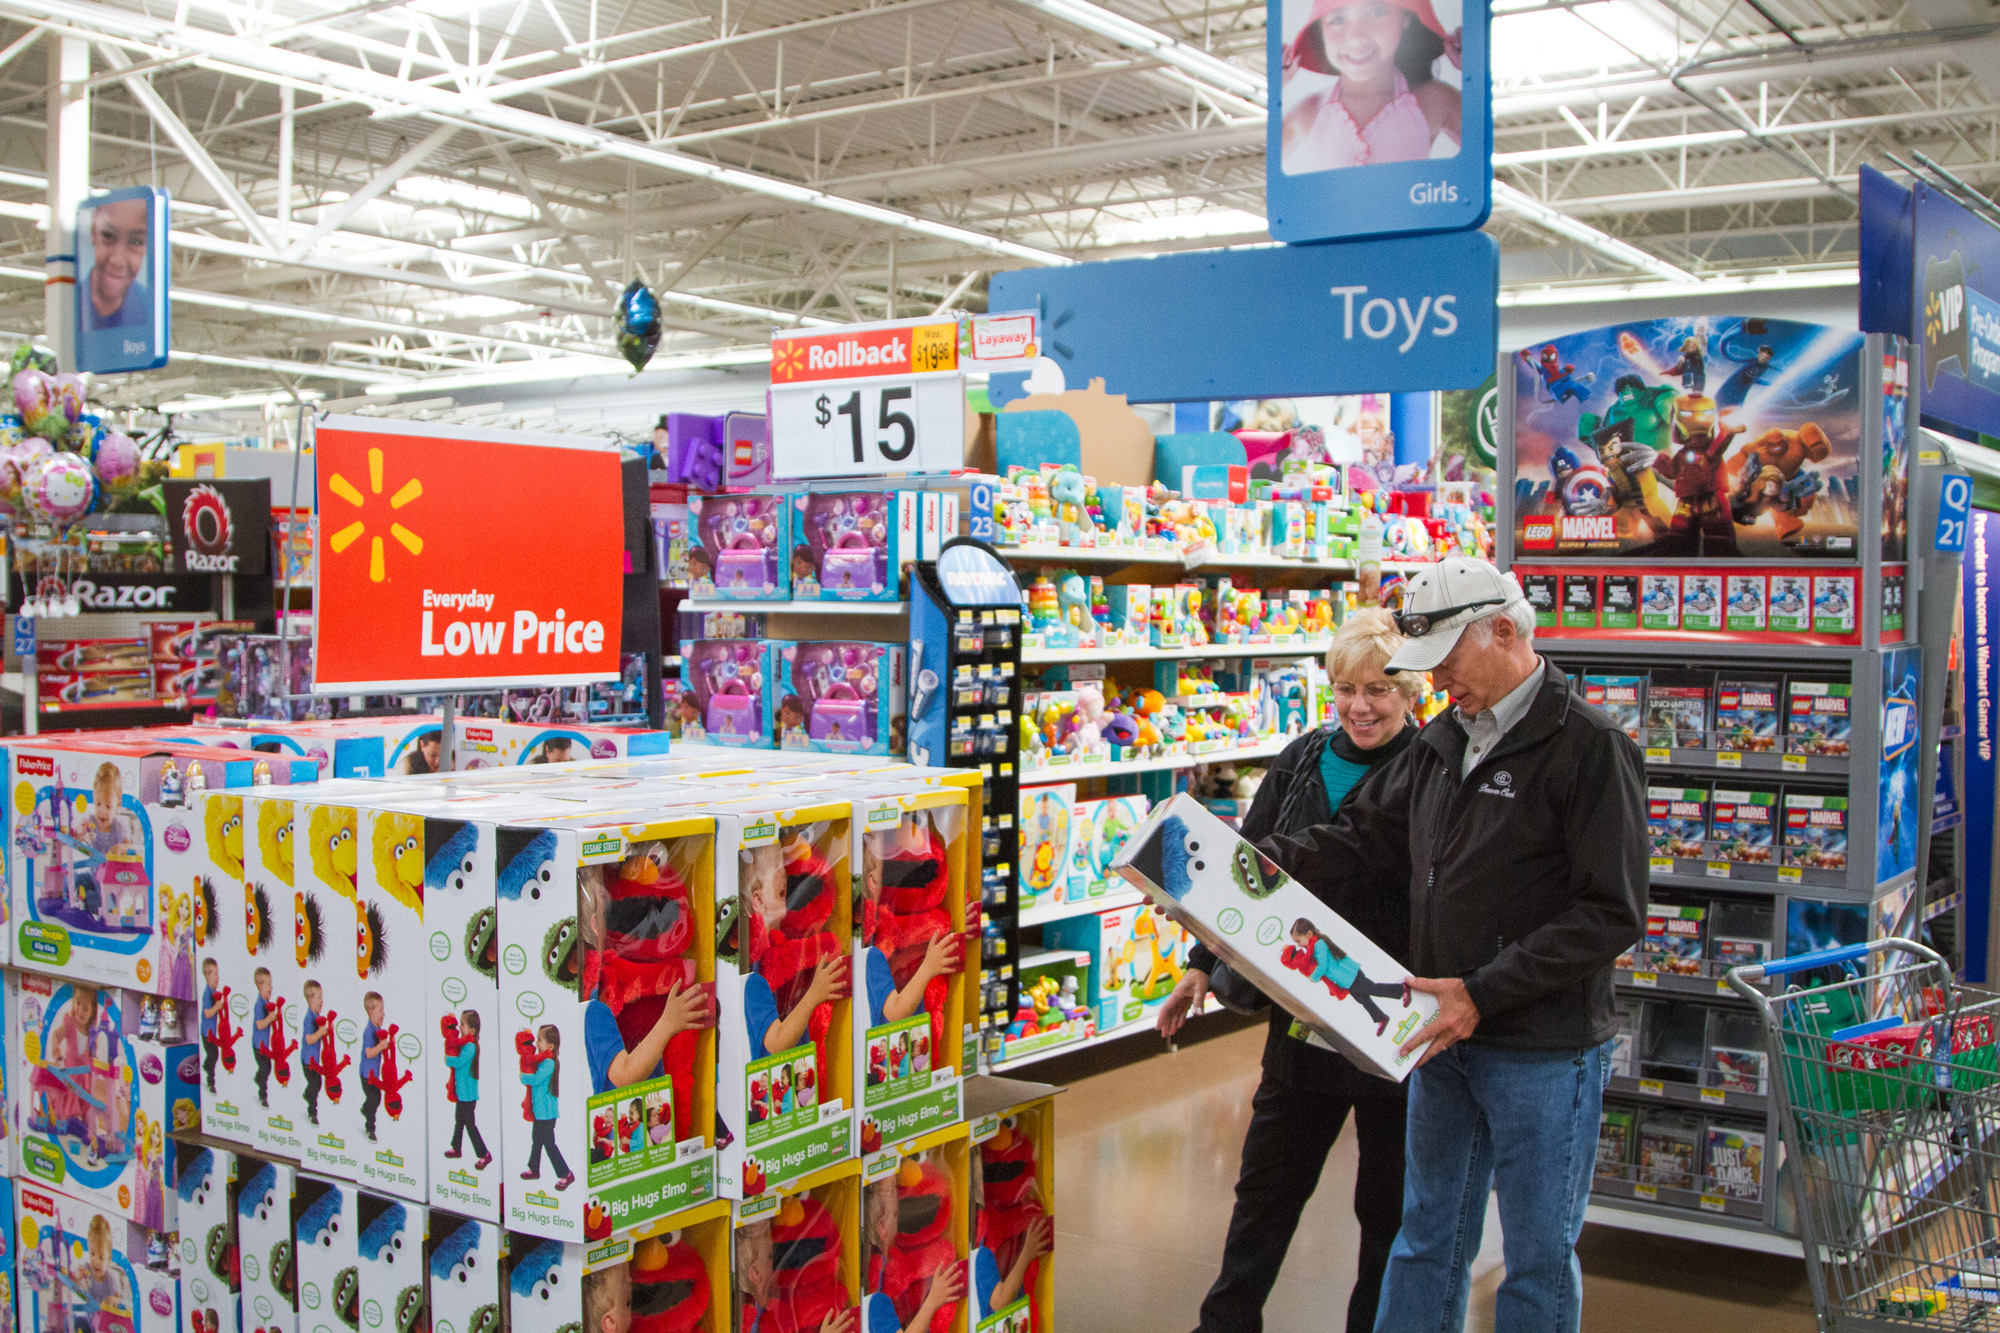 Walmart Toys For Girls : Customers shopping black friday toys